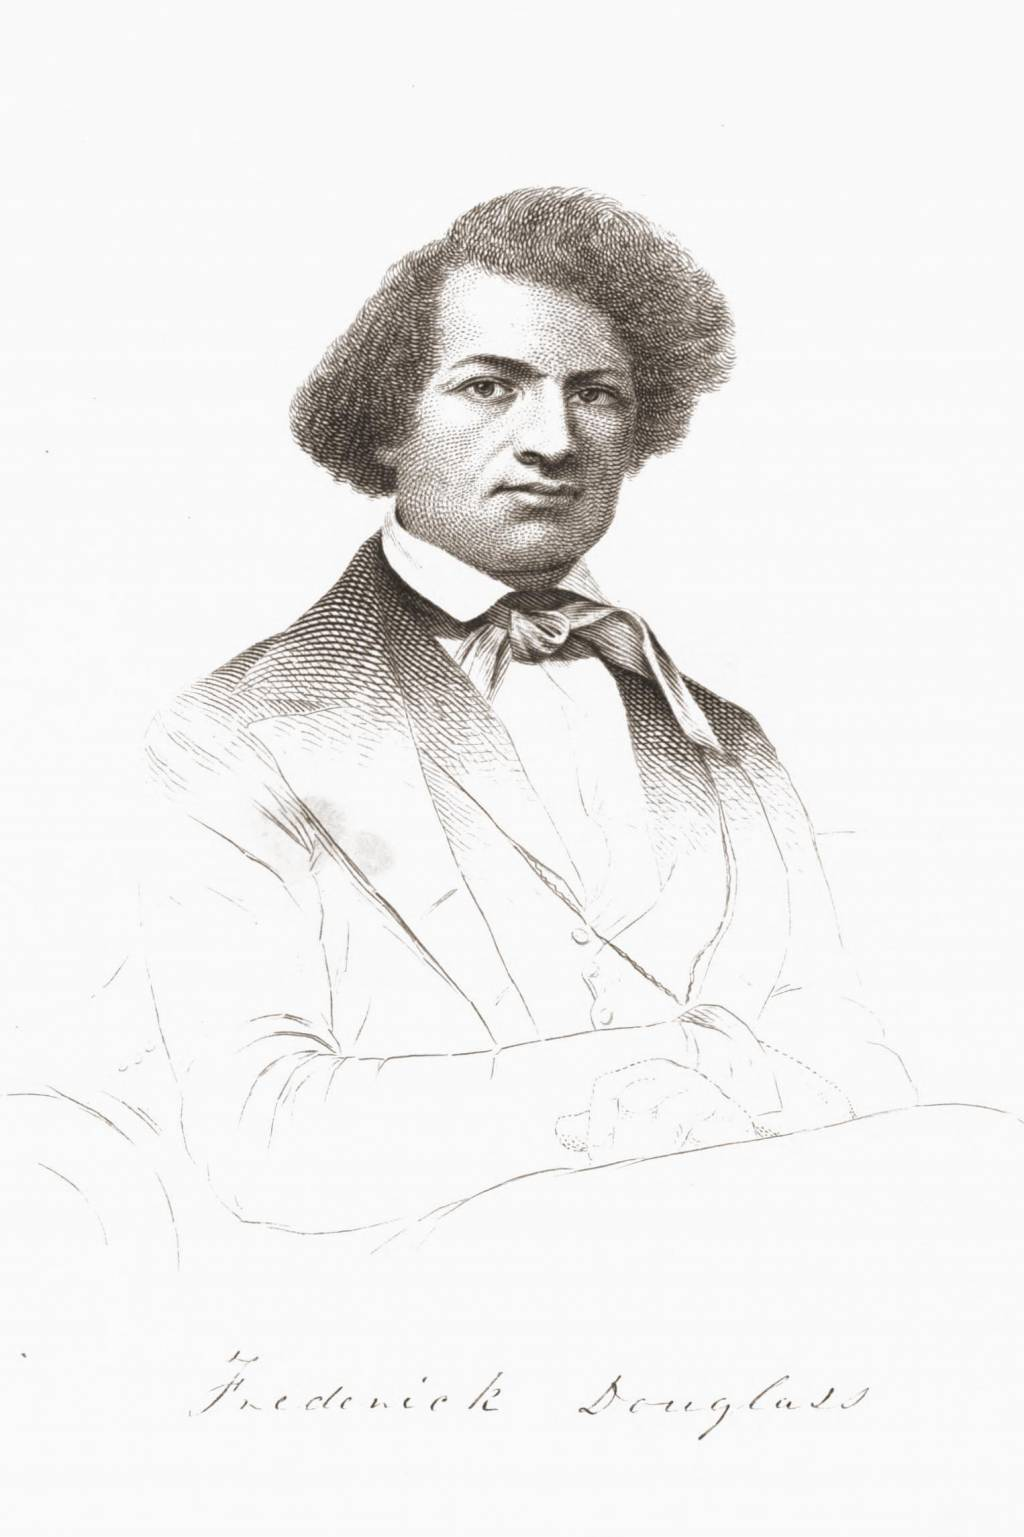 a biography of the life of frederick douglass and james baldwin a sketch of douglass from the 1845 edition of narrative of the life of frederick